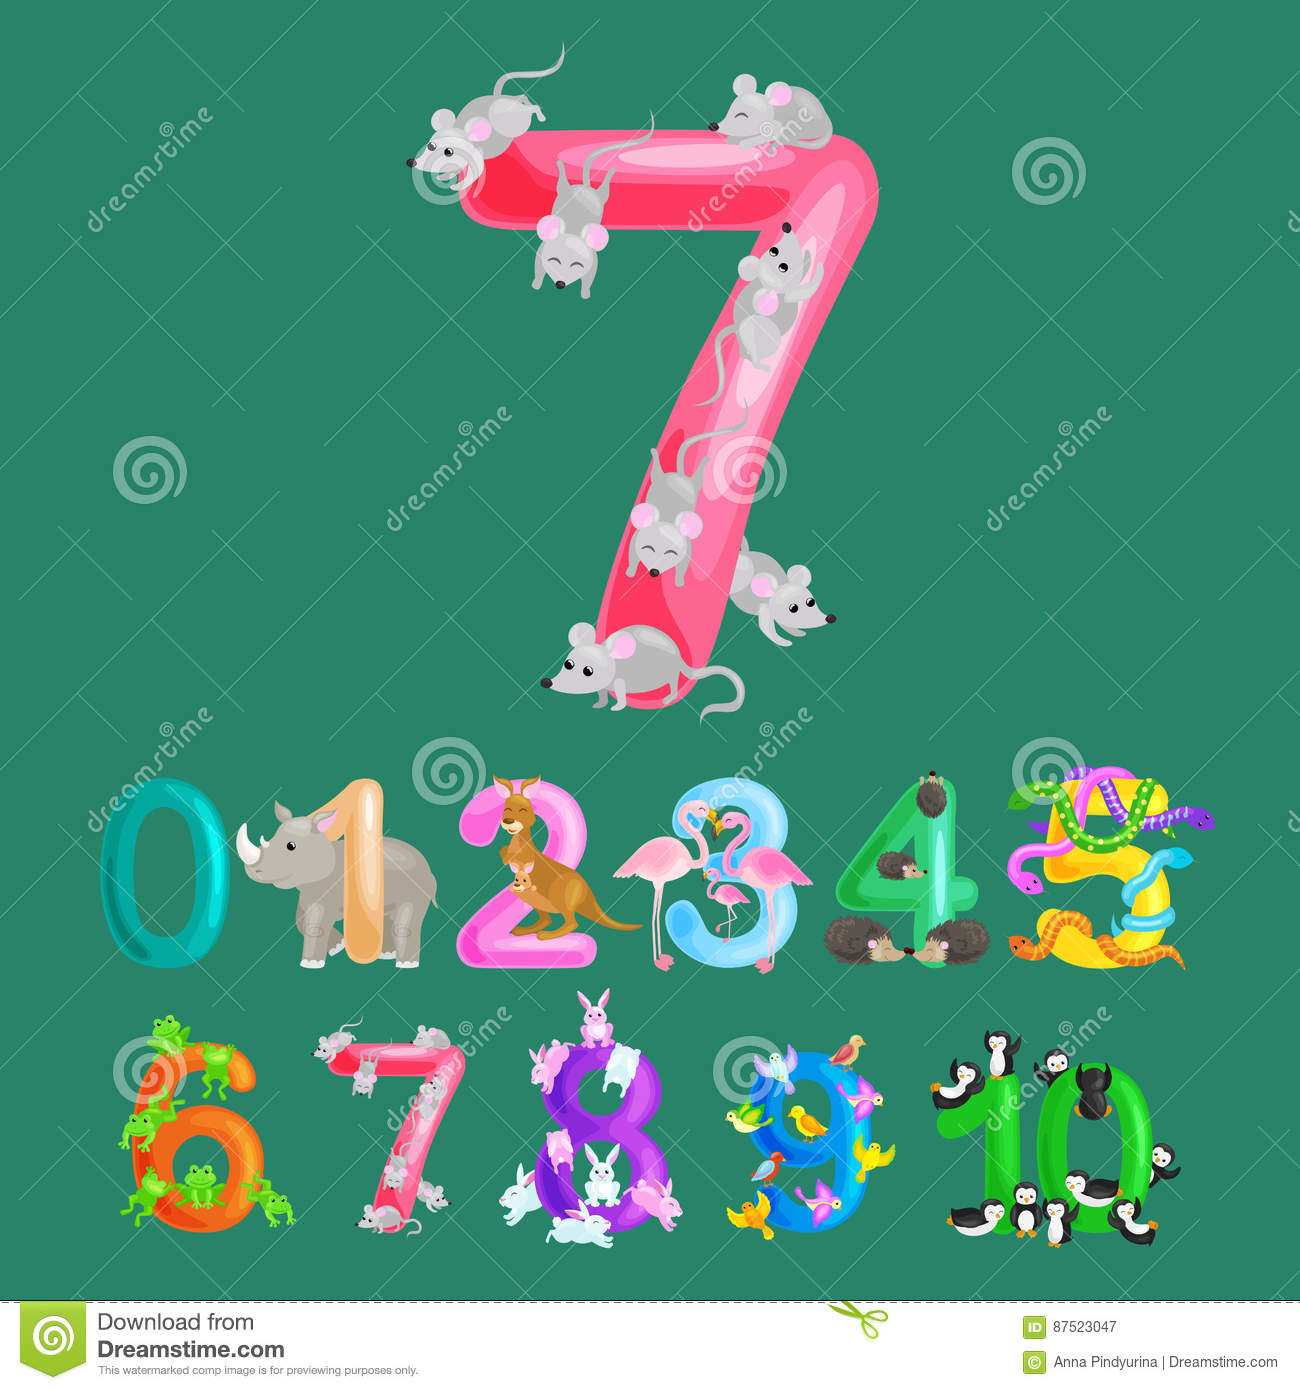 Ordinal Numbers For Teaching Children Counting With The Ability To ...